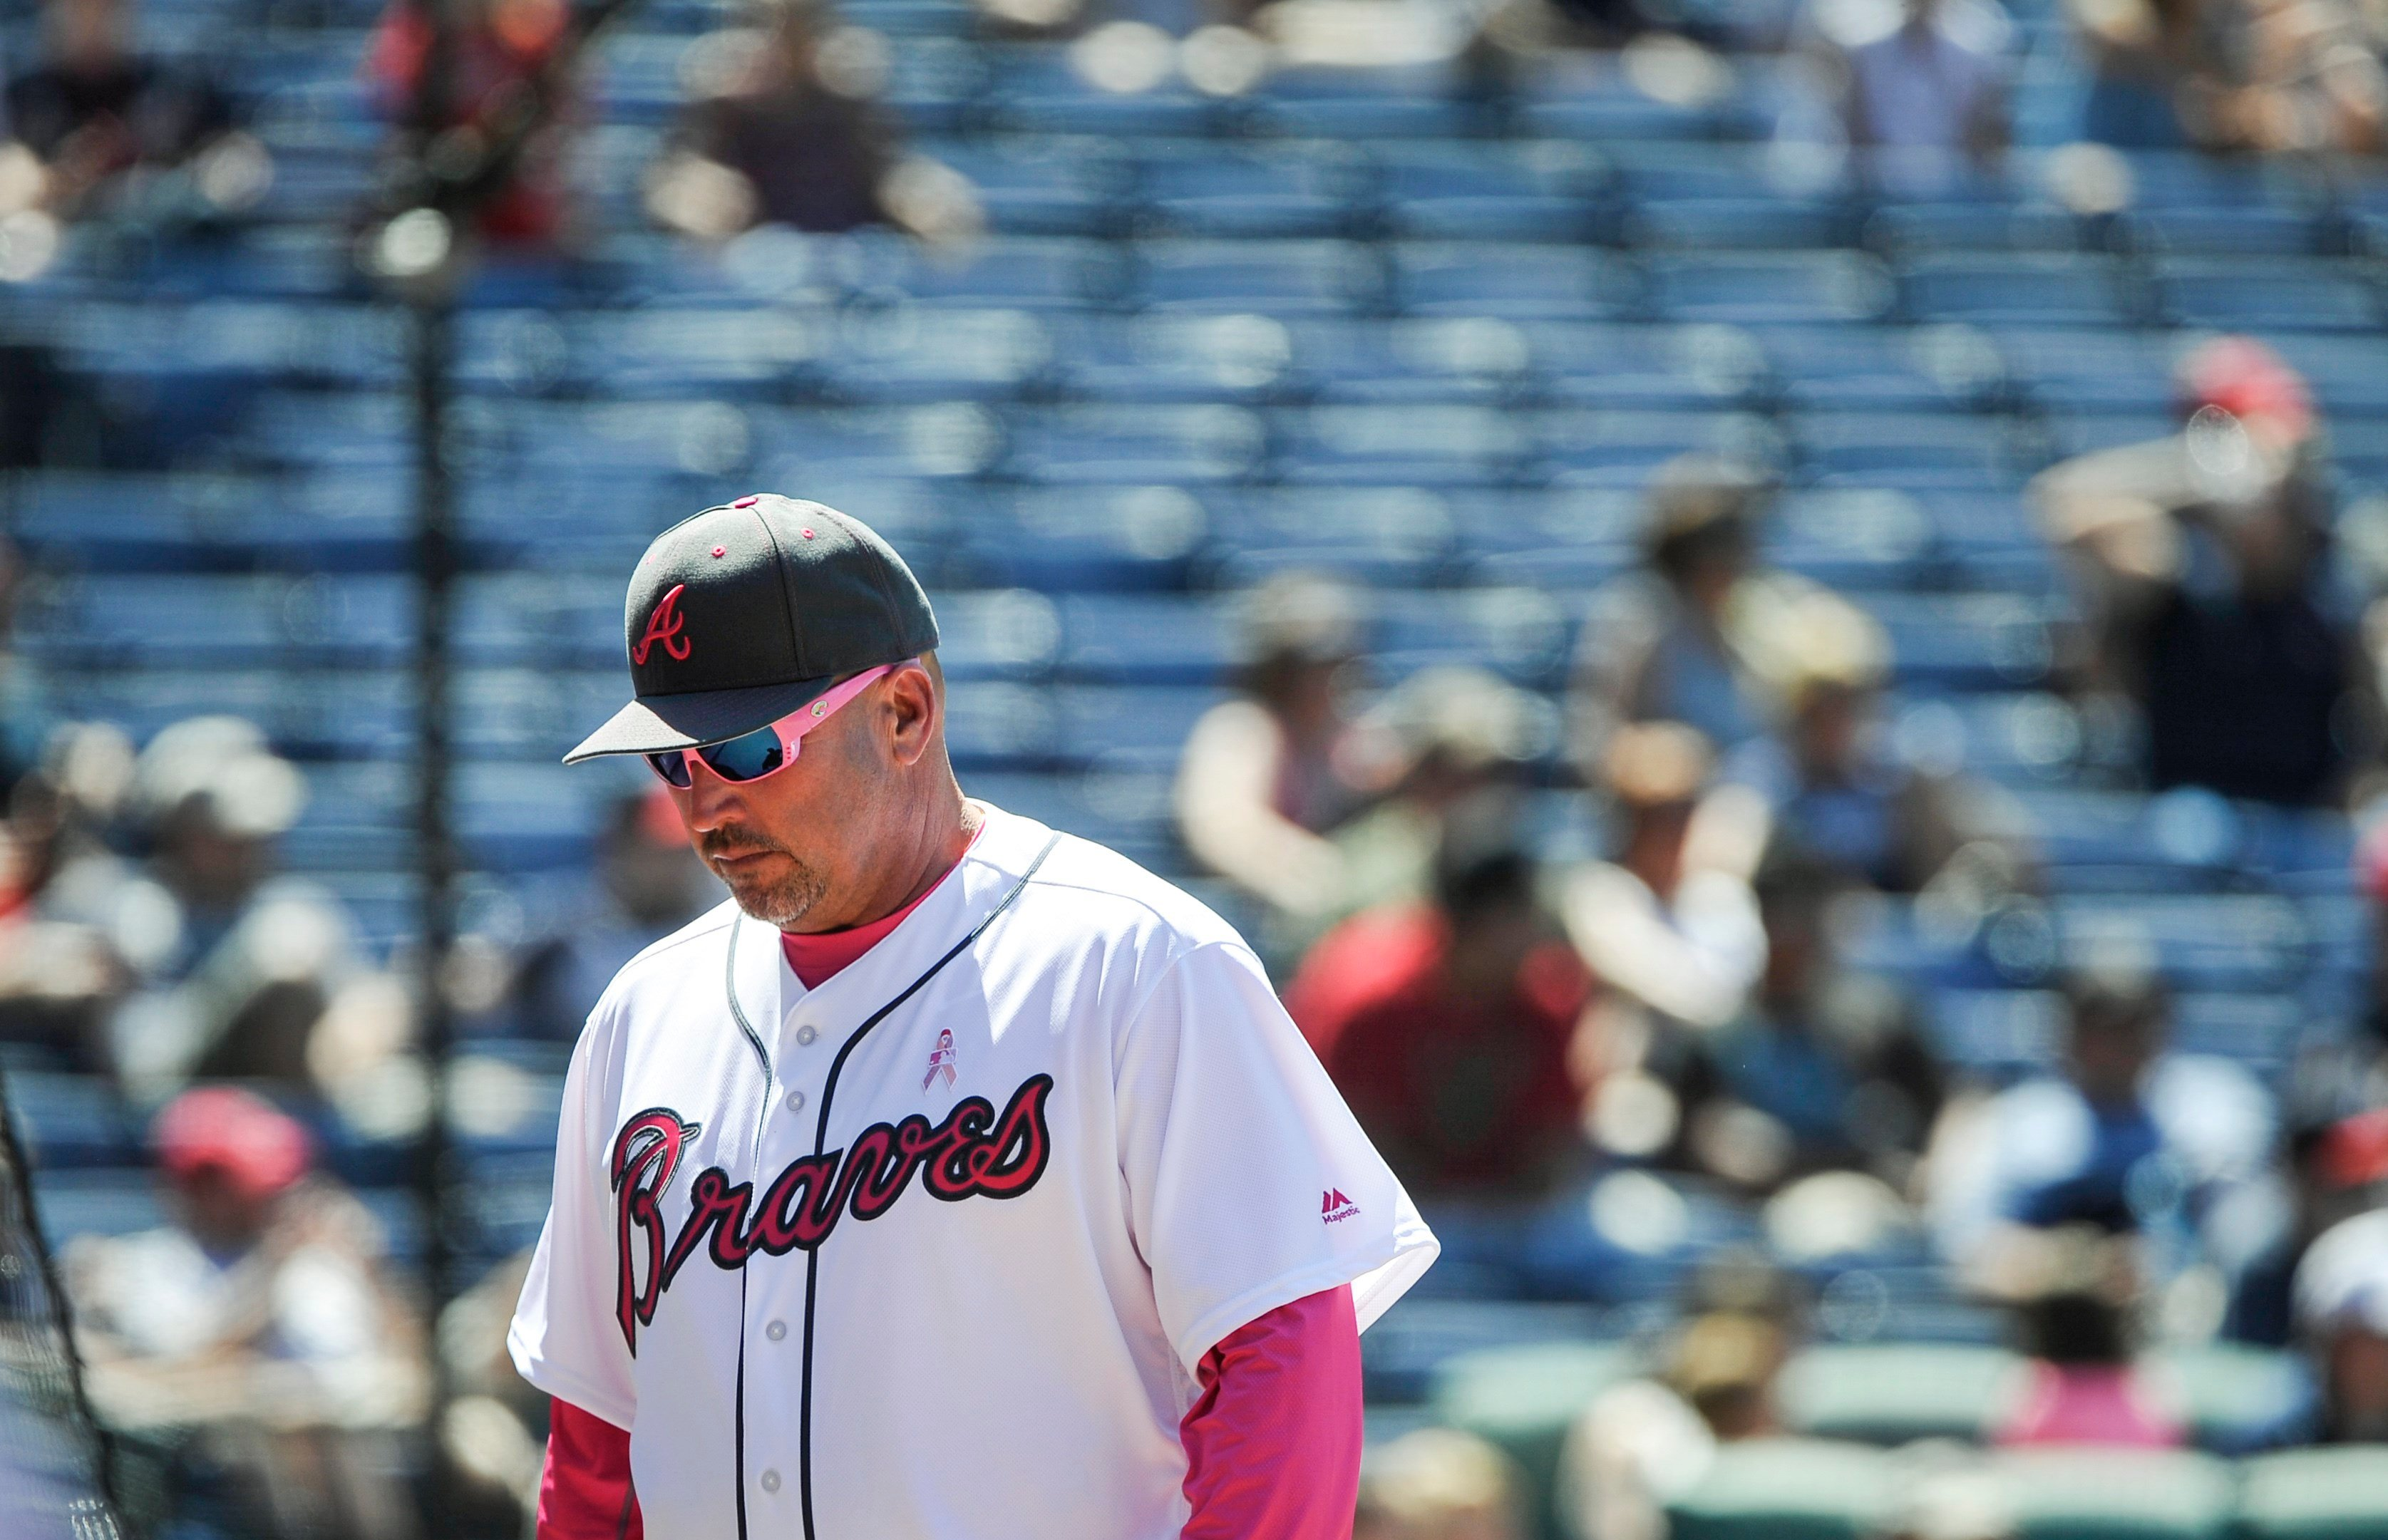 Atlanta Braves manager Fredi Gonzalez comes off the field with half-empty stands behind him after discussing a call with an umpire during the eighth inning of a baseball game against the Diamondbacks, Sunday, May 8, 2016, in Atlanta. (AP PhotoJohn Amis)